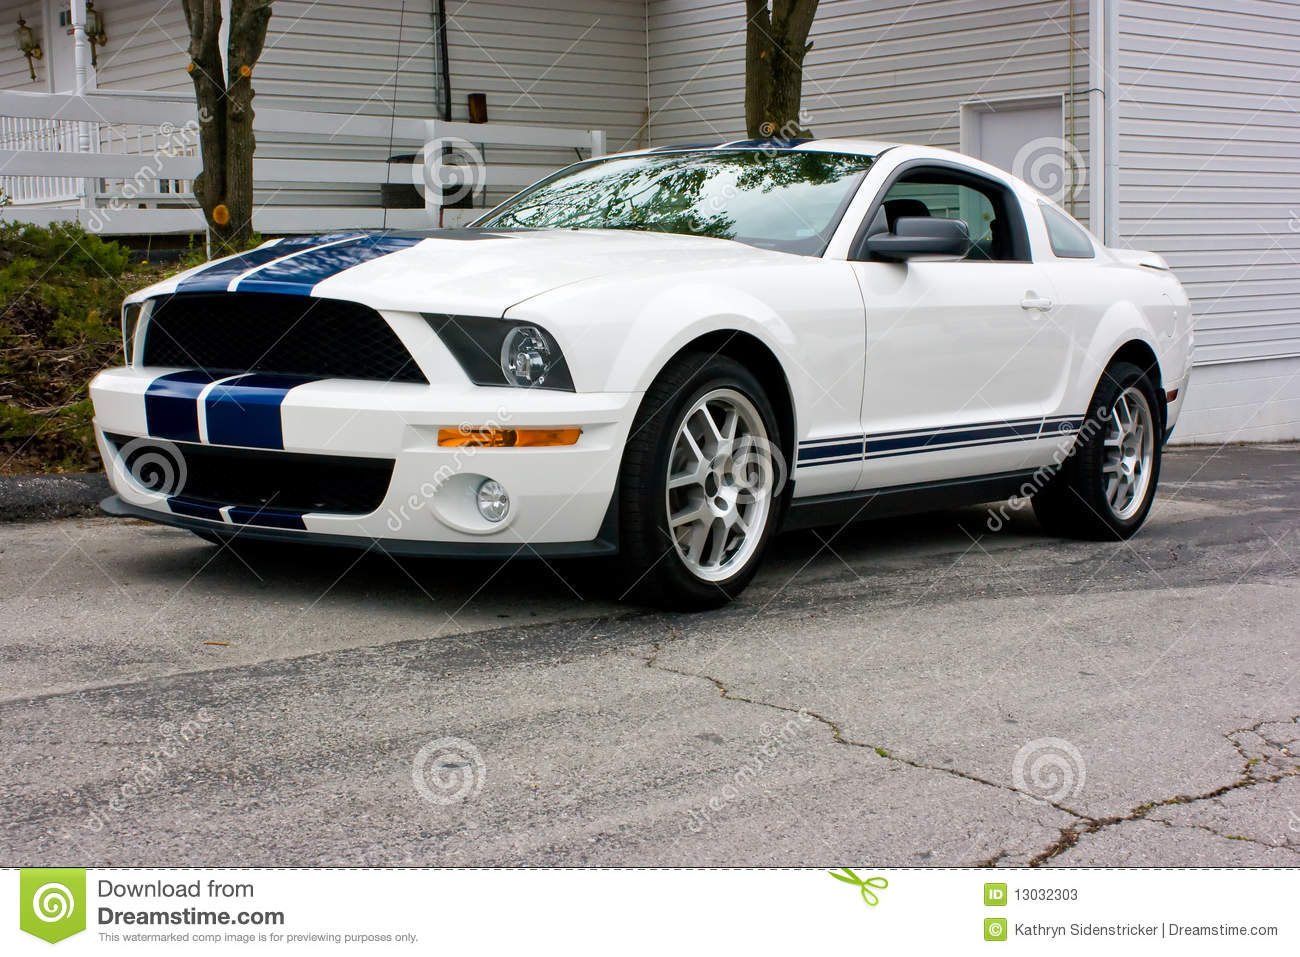 2009 Ford Shelby Cobra Gt 500 Stock Photos Image 13032303